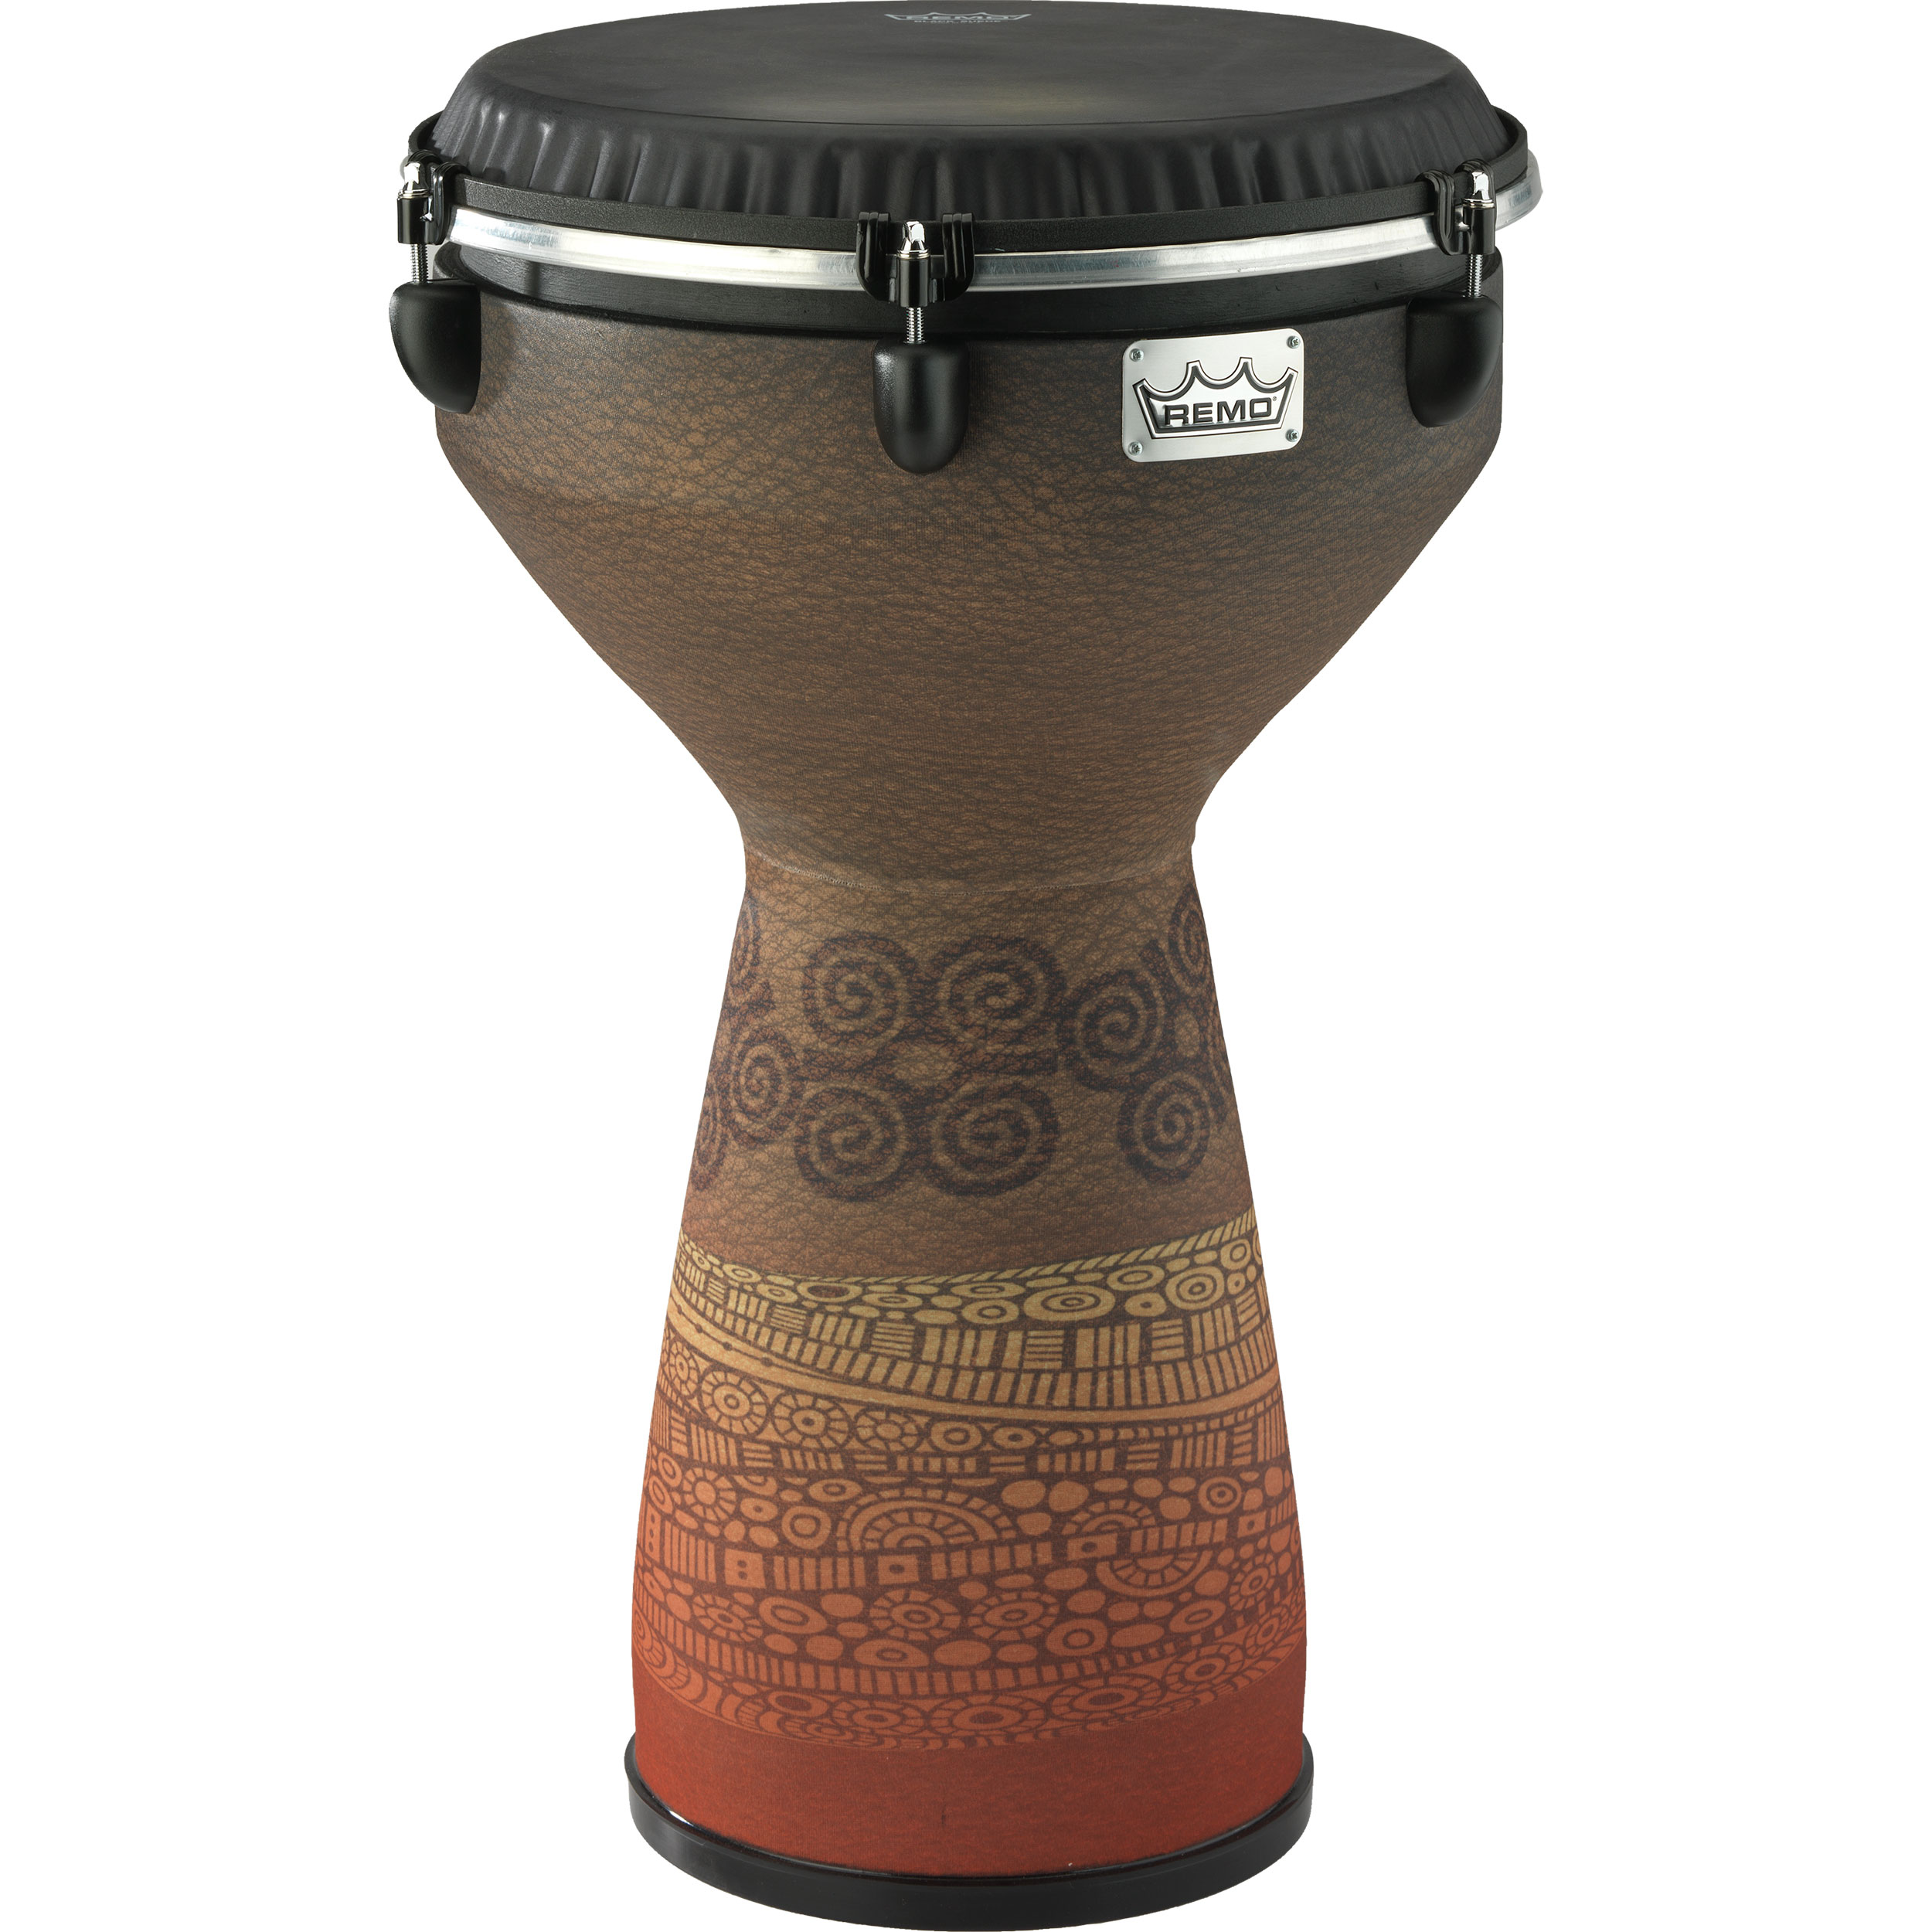 "Remo 13"" Flareout Djembe in Desert Brown"